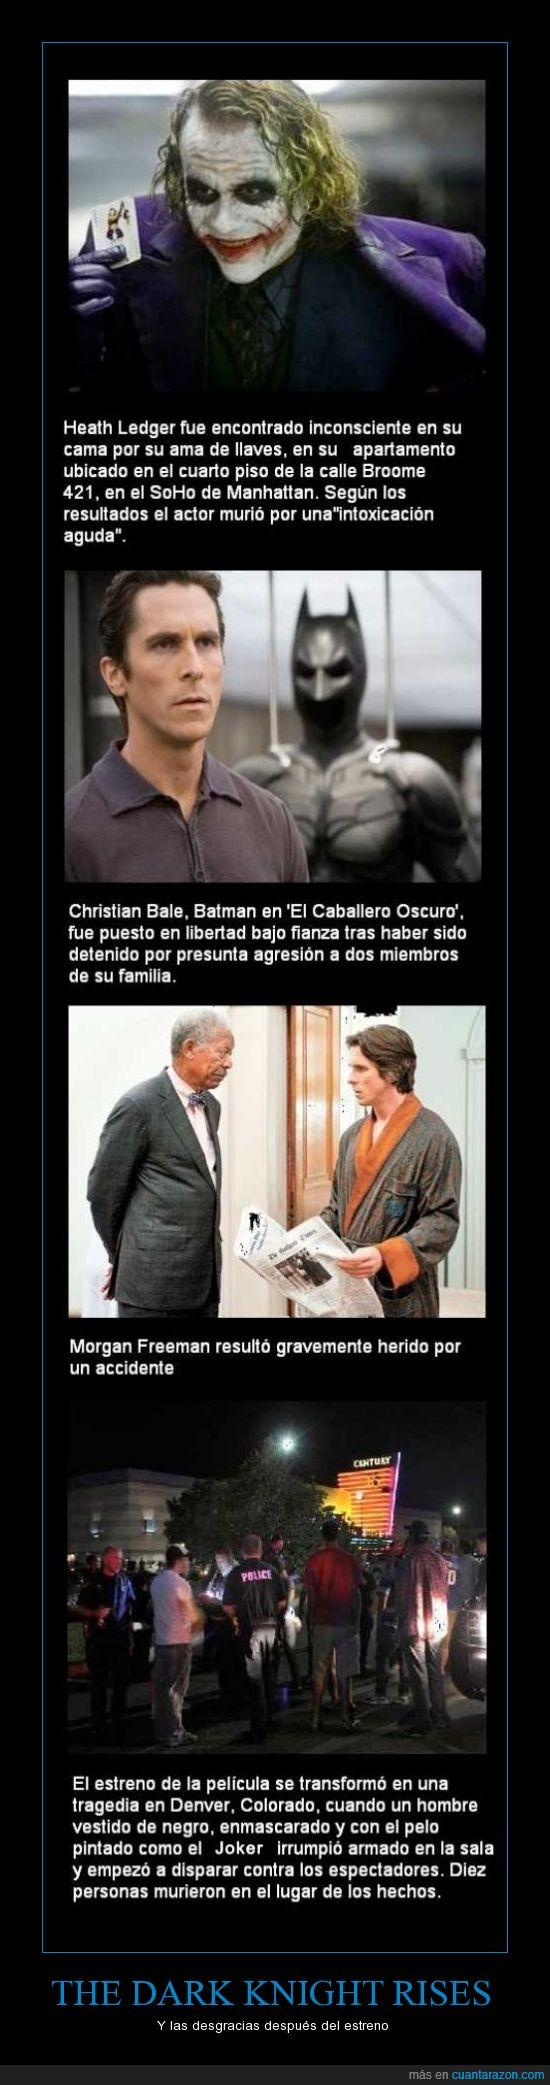 bale,batman,heath ledger,joker,maldicion,morgan freeman